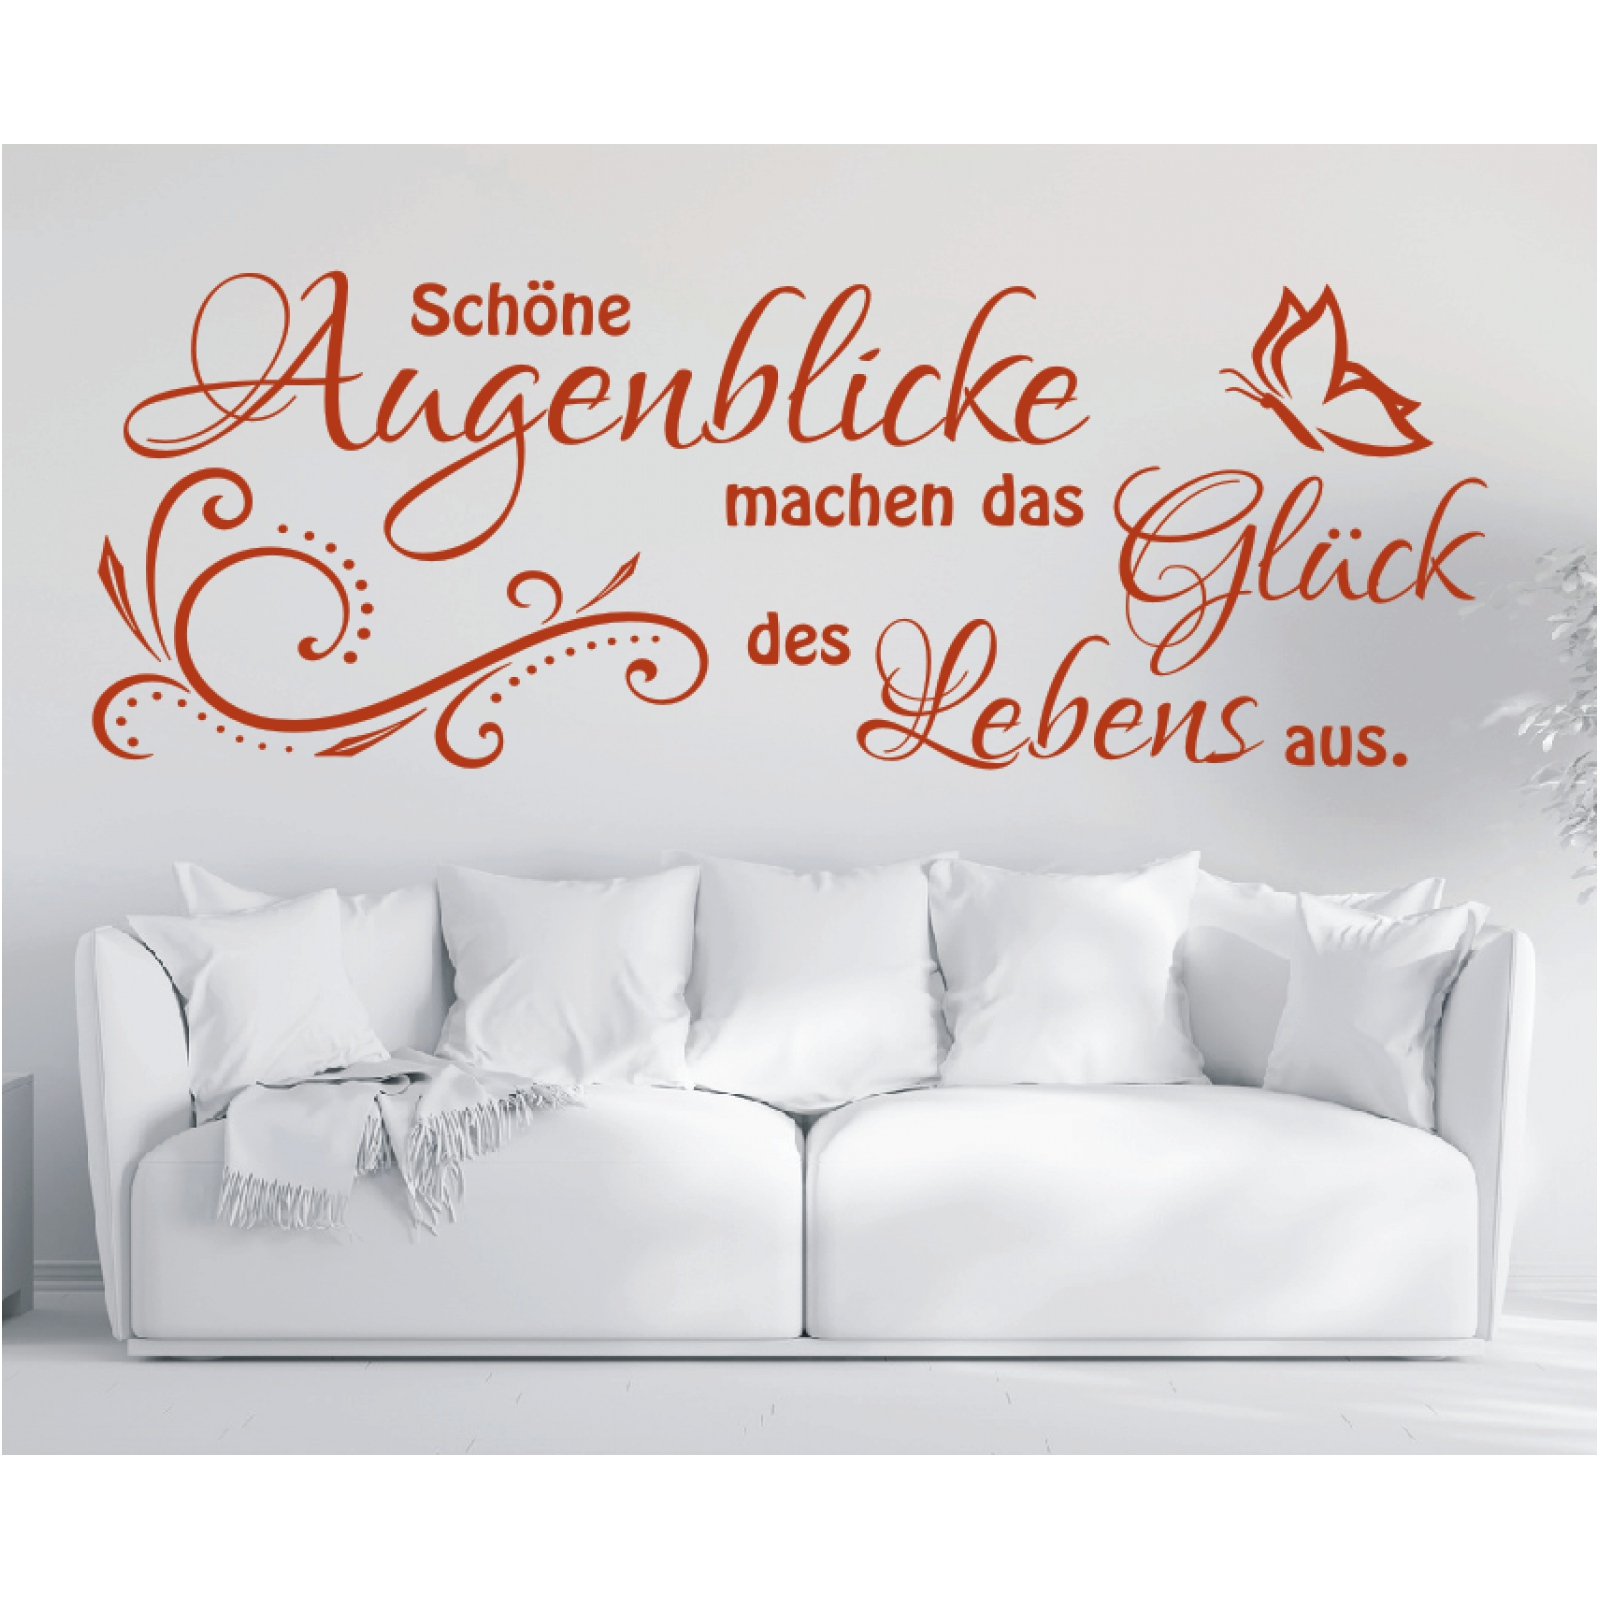 x1915 wandtattoo spruch sch ne augenblicke das gl ck. Black Bedroom Furniture Sets. Home Design Ideas